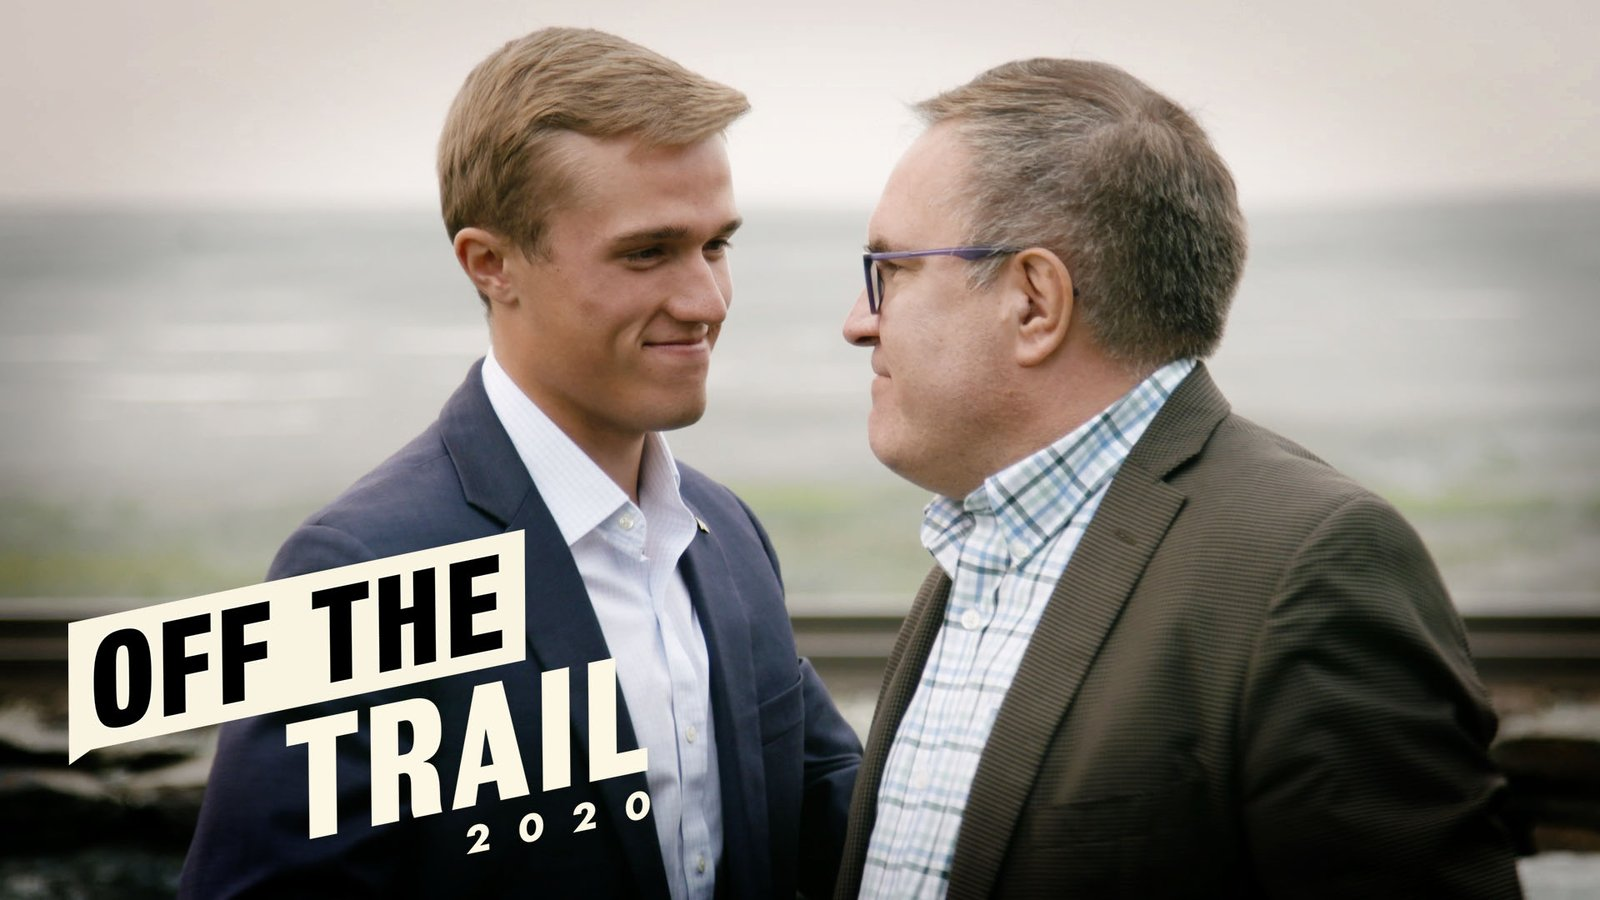 Off The Trail - How Young Conservatives Hope To Make Climate A GOP Issue